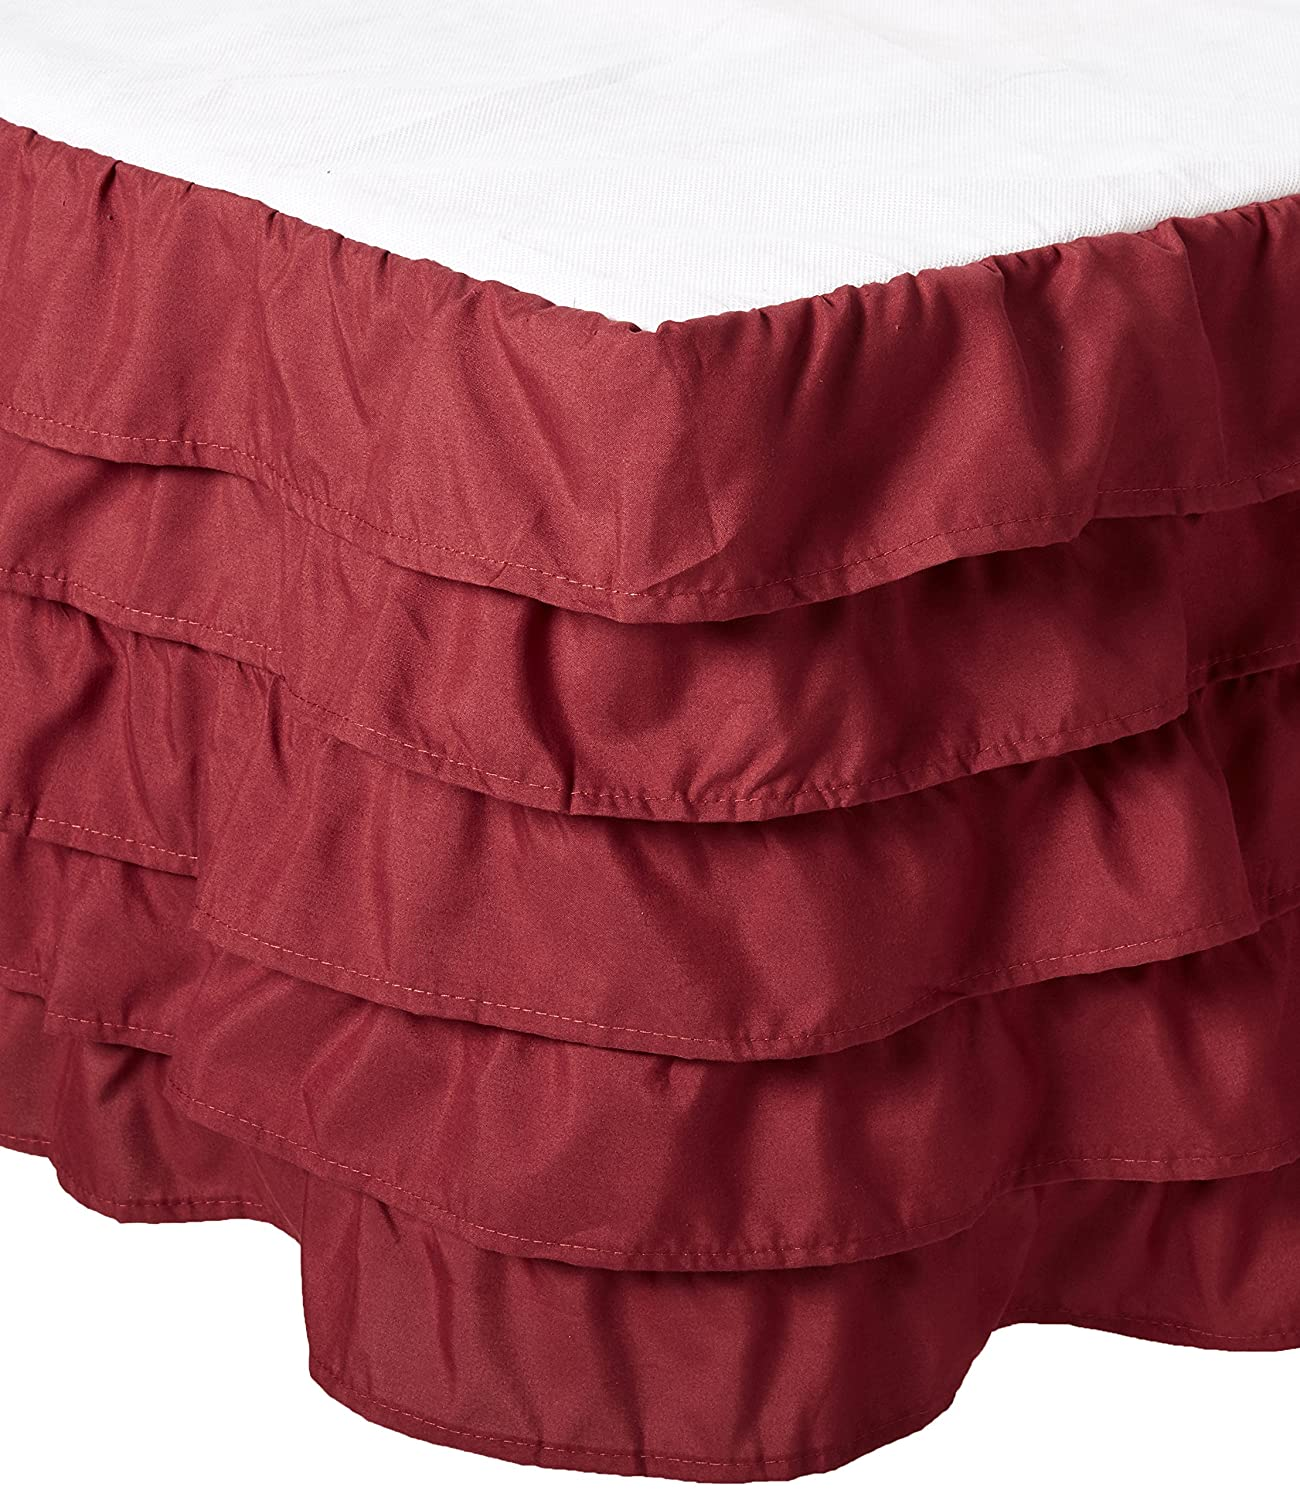 (California King, Burgundy) Elegant Comfort Luxurious Premium Quality 1500 Thread Count Wrinkle and Fade Resistant Egyptian Quality Microfiber Multi-Ruffle Bed Skirt 38cm Drop, California King, Burgundy B072336PJL California King|バーガンディー バーガンディー California King